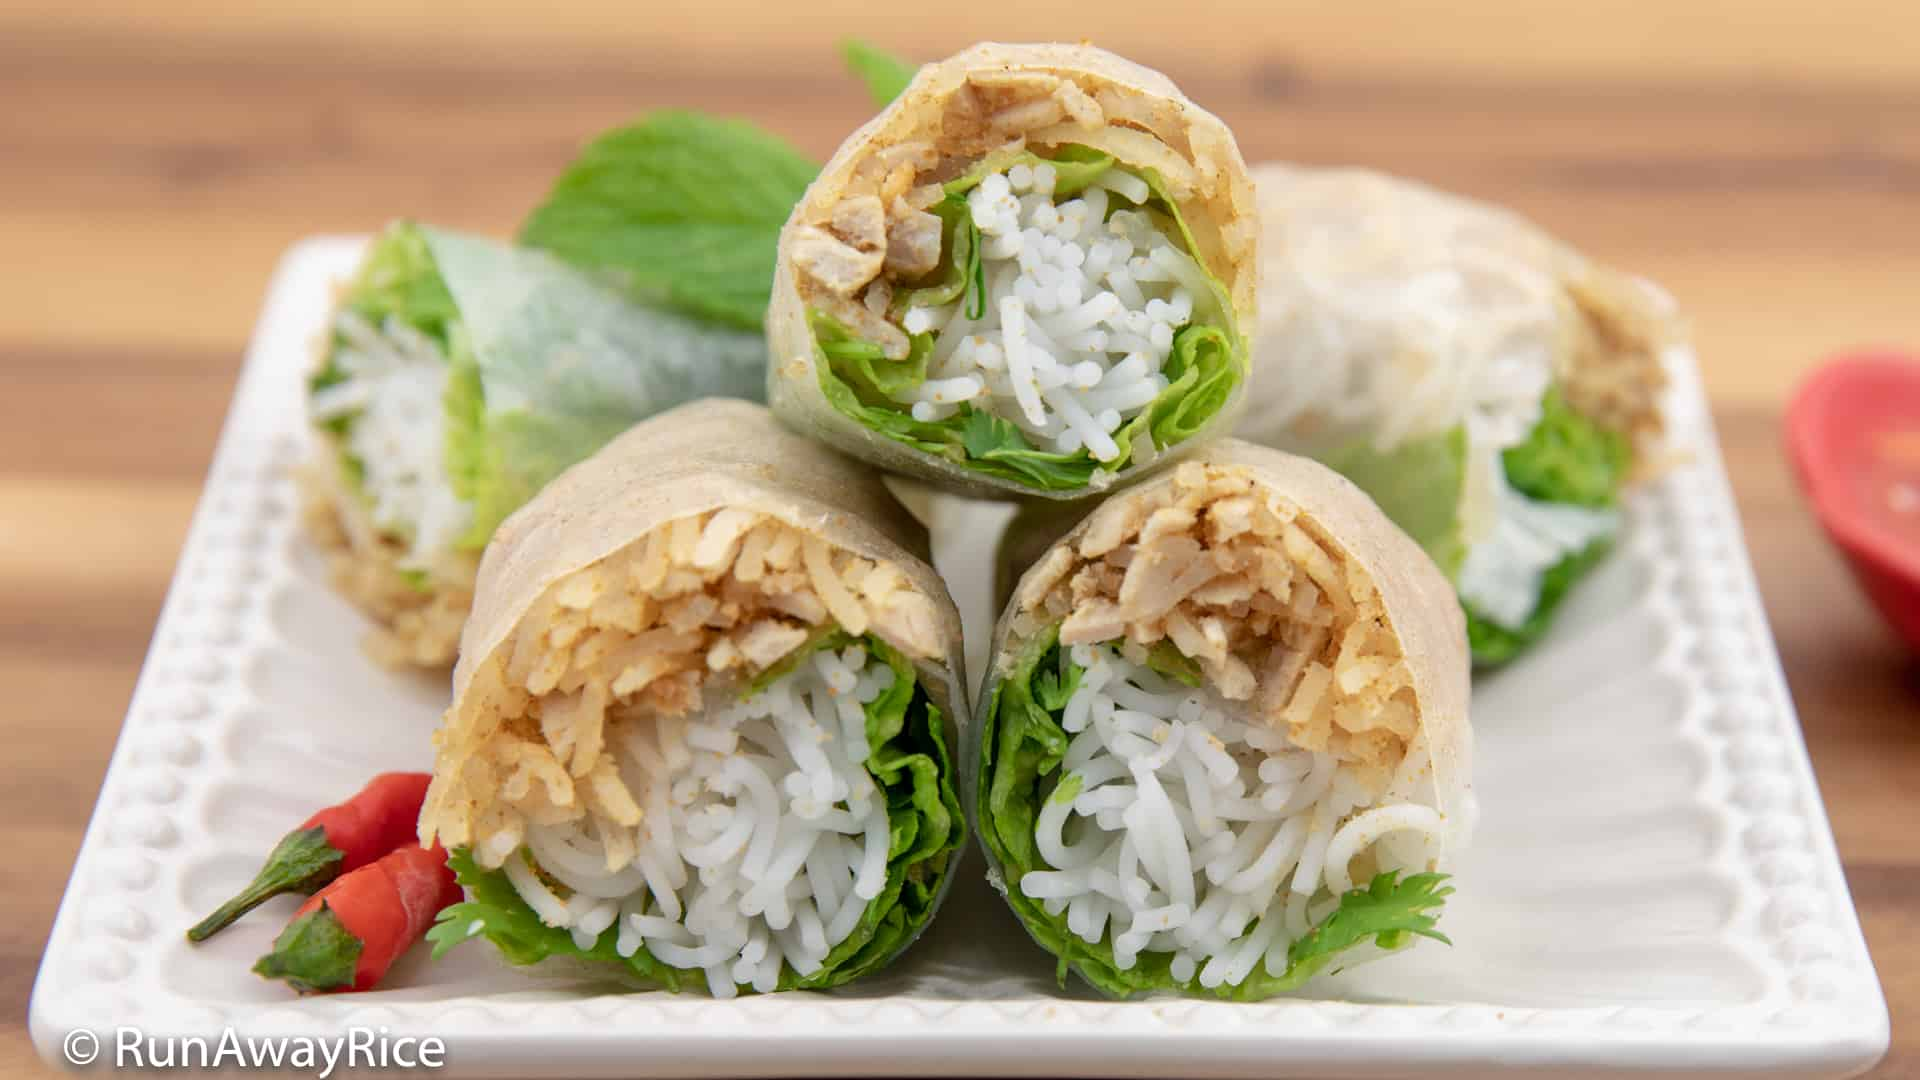 Shredded Pork Skin Fresh Spring Rolls (Bi Cuon) - Refreshing Rice Paper Rolls! | recipe from runawayrice.com